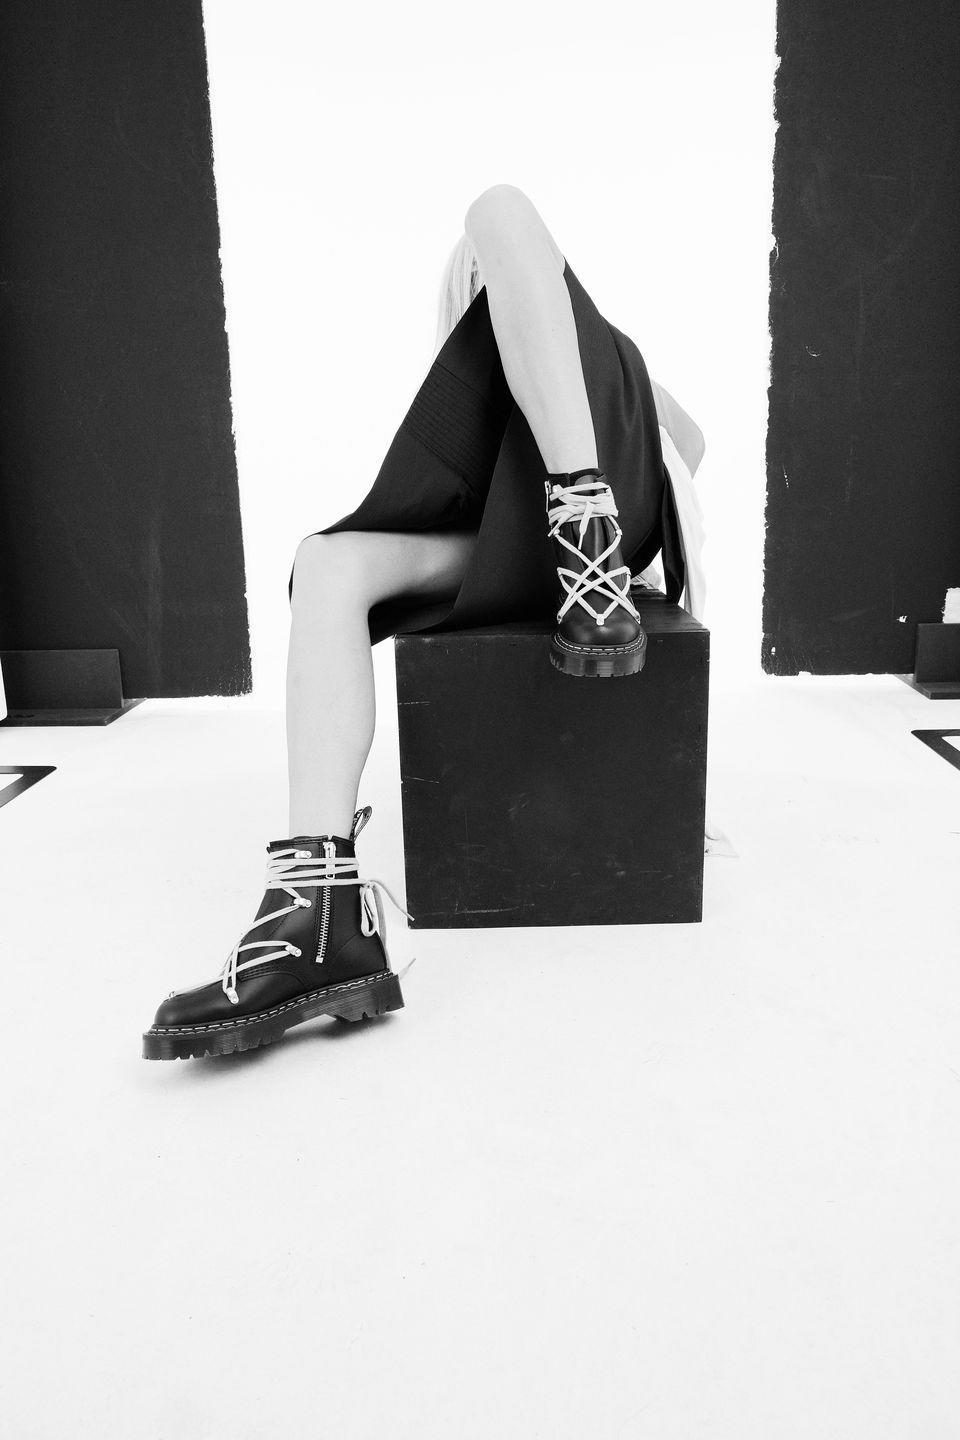 """<p><strong>Who: </strong>Dr. Martens</p><p><strong>What: </strong>Collaboration with Rick Owens</p><p><strong>Where:</strong> Online at Drmartens.com or Rickowens.com</p><p><strong>Why: </strong>It's almost impossible to believe that Dr. Marten's and Rick Owens have never collaborated until now, since both brands represent the irreverent grunge movement born from the early '90s. Owens says of that time that """"Dr. Martens became a symbol of a raw and sweaty vitality."""" Now, almost 40 years later, Owens is dropping two releases with the shoe brand, the first of which is a redux of Dr Marten's 1460 Bex platform boot. Owens has outfitted the boots with intricate lacing, which immediately brings to mind the visceral and complex designs that he has become notorious for. The first drop from the match made in heaven releases on Saturday, March 20. </p><p><a class=""""link rapid-noclick-resp"""" href=""""https://www.rickowens.eu/en/US"""" rel=""""nofollow noopener"""" target=""""_blank"""" data-ylk=""""slk:SHOP HERE"""">SHOP HERE</a><br><strong><br></strong></p>"""